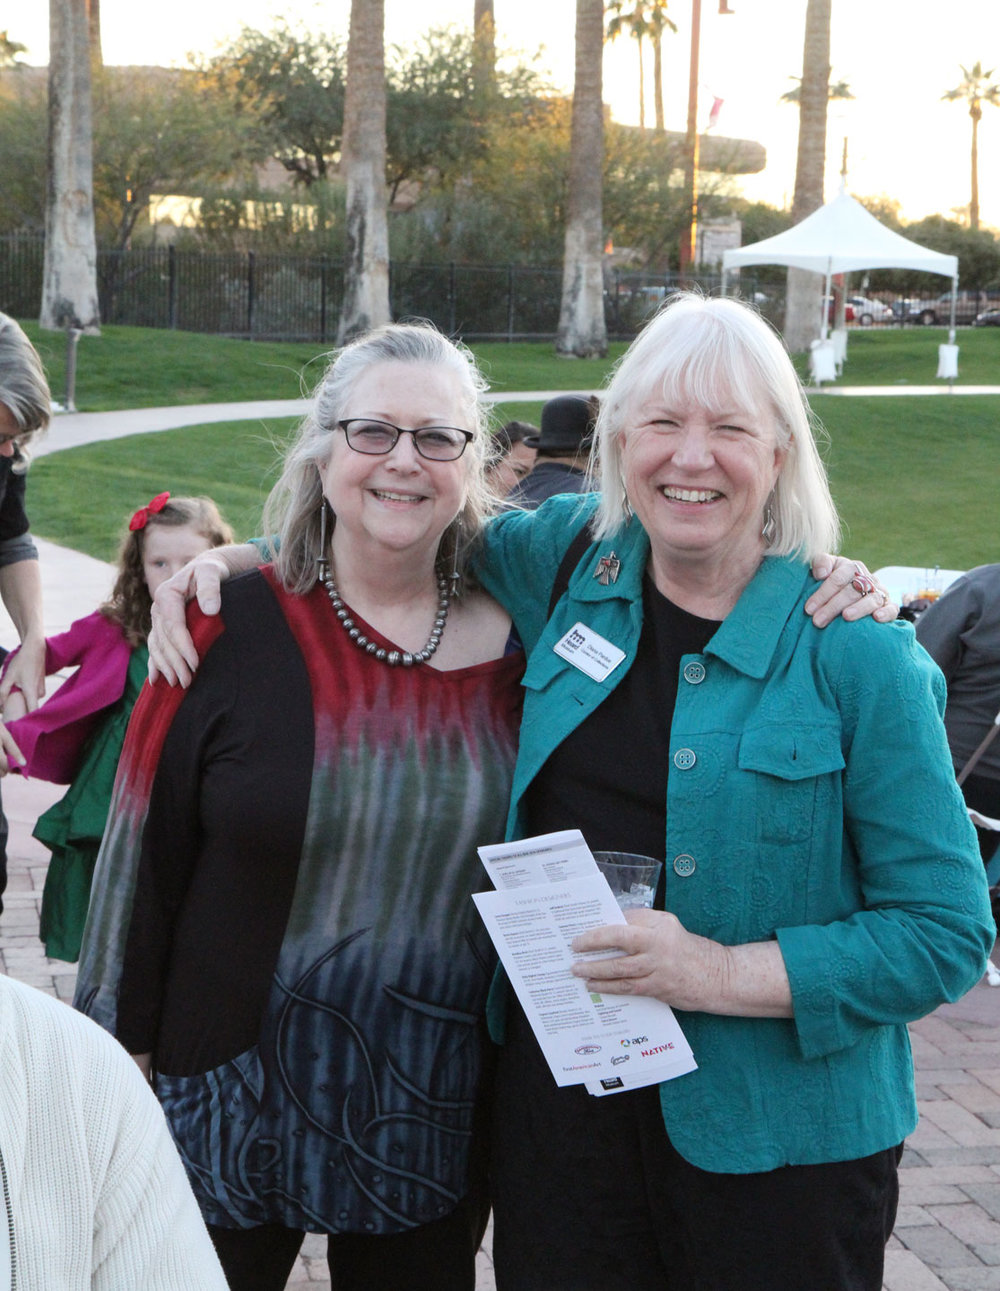 DIANA PARDUE and friend at the Best of Show reception. Pardue is the Heard Museum's Curator of Collections, and most recently curated  Symmetry in Stone: The Jewelry of Richard I. Chavez .